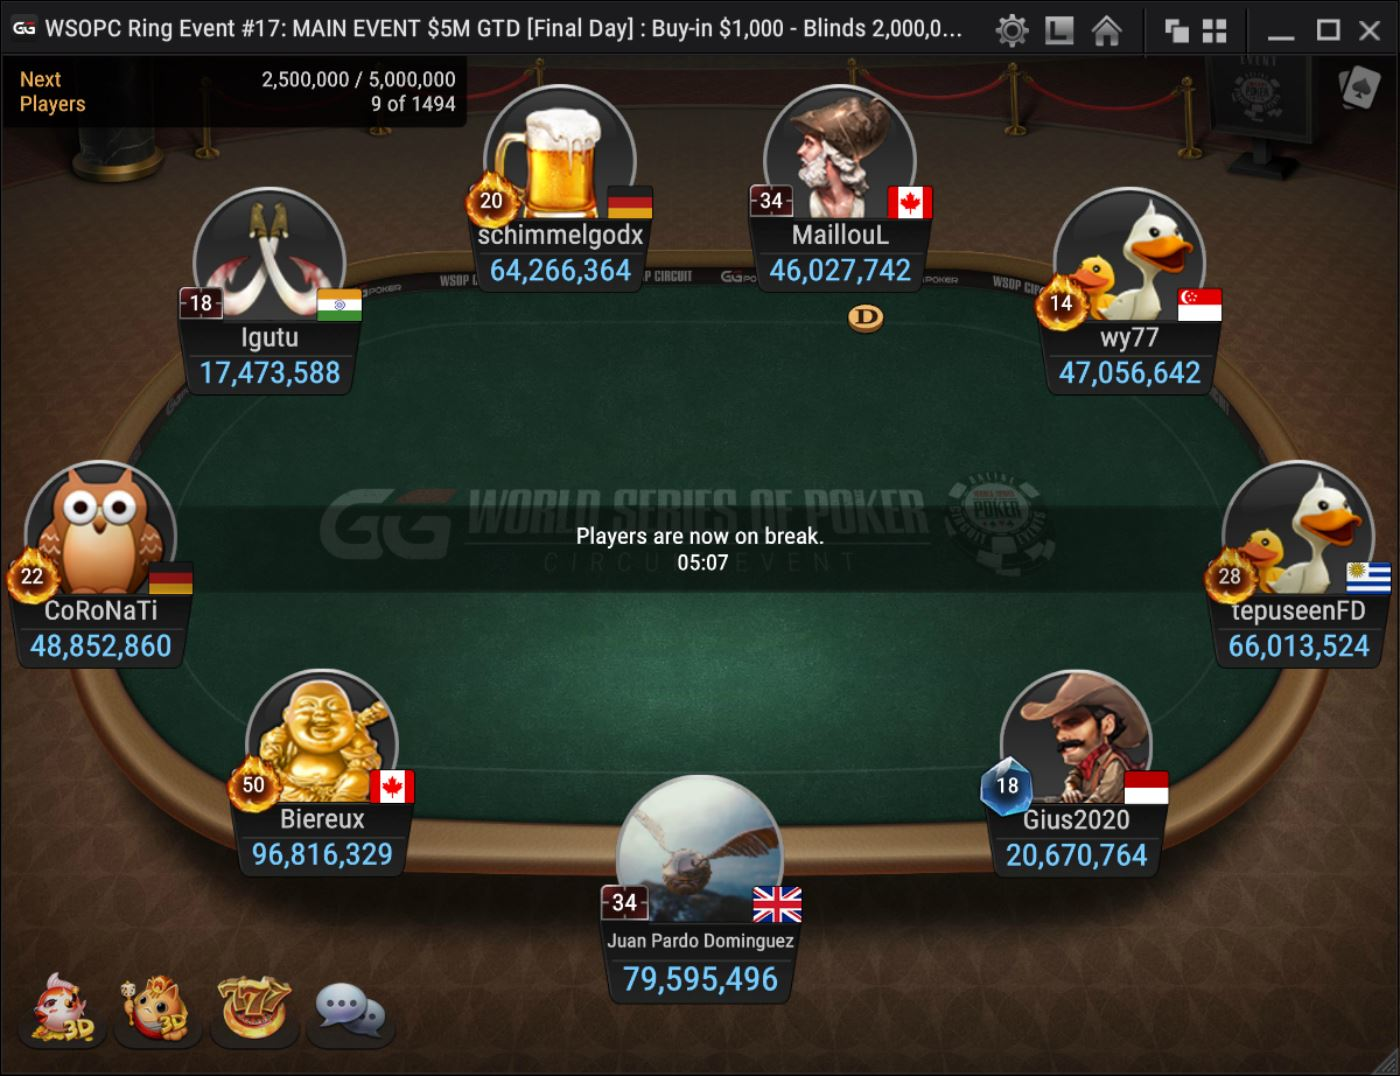 Event 17 Final Table